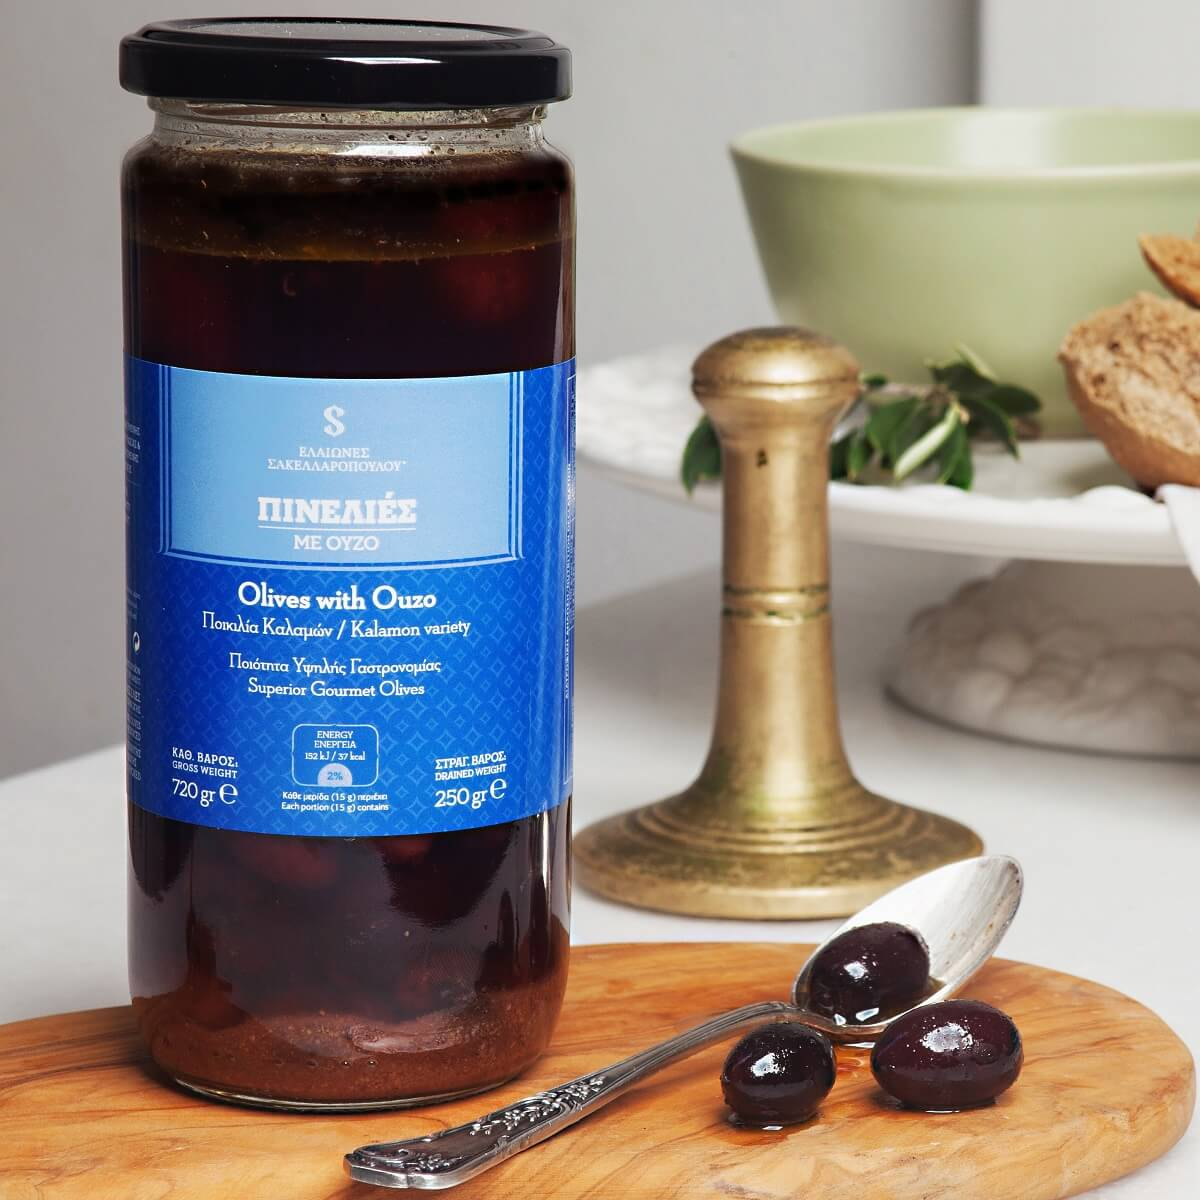 pinelies kalamata olives with ouzo premium gourmet superior